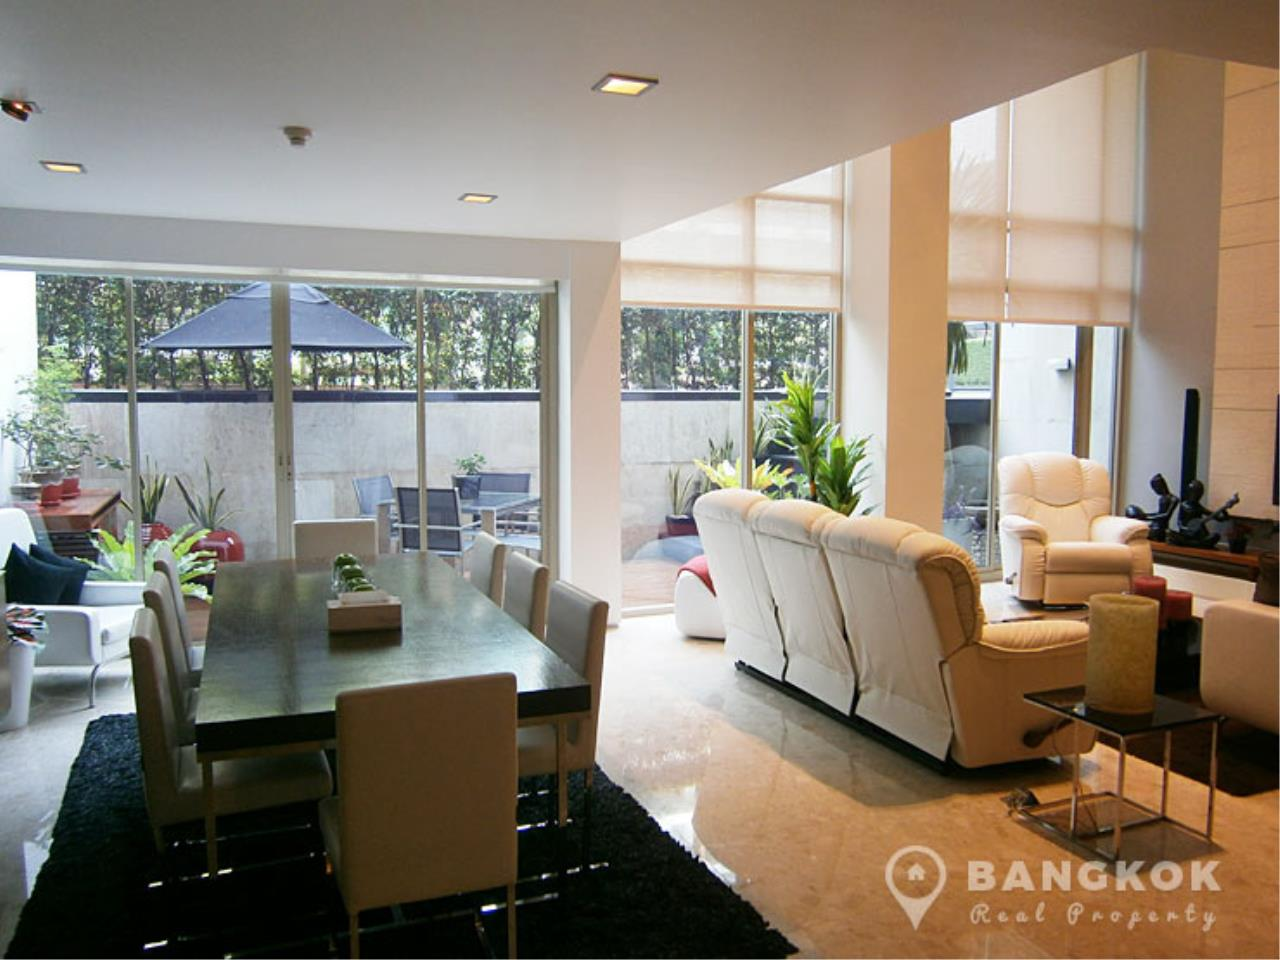 Bangkok Real Property Agency's Ficus Lane | A Fabulous Spacious 3 Bed 4 Bath Duplex near BTS 40